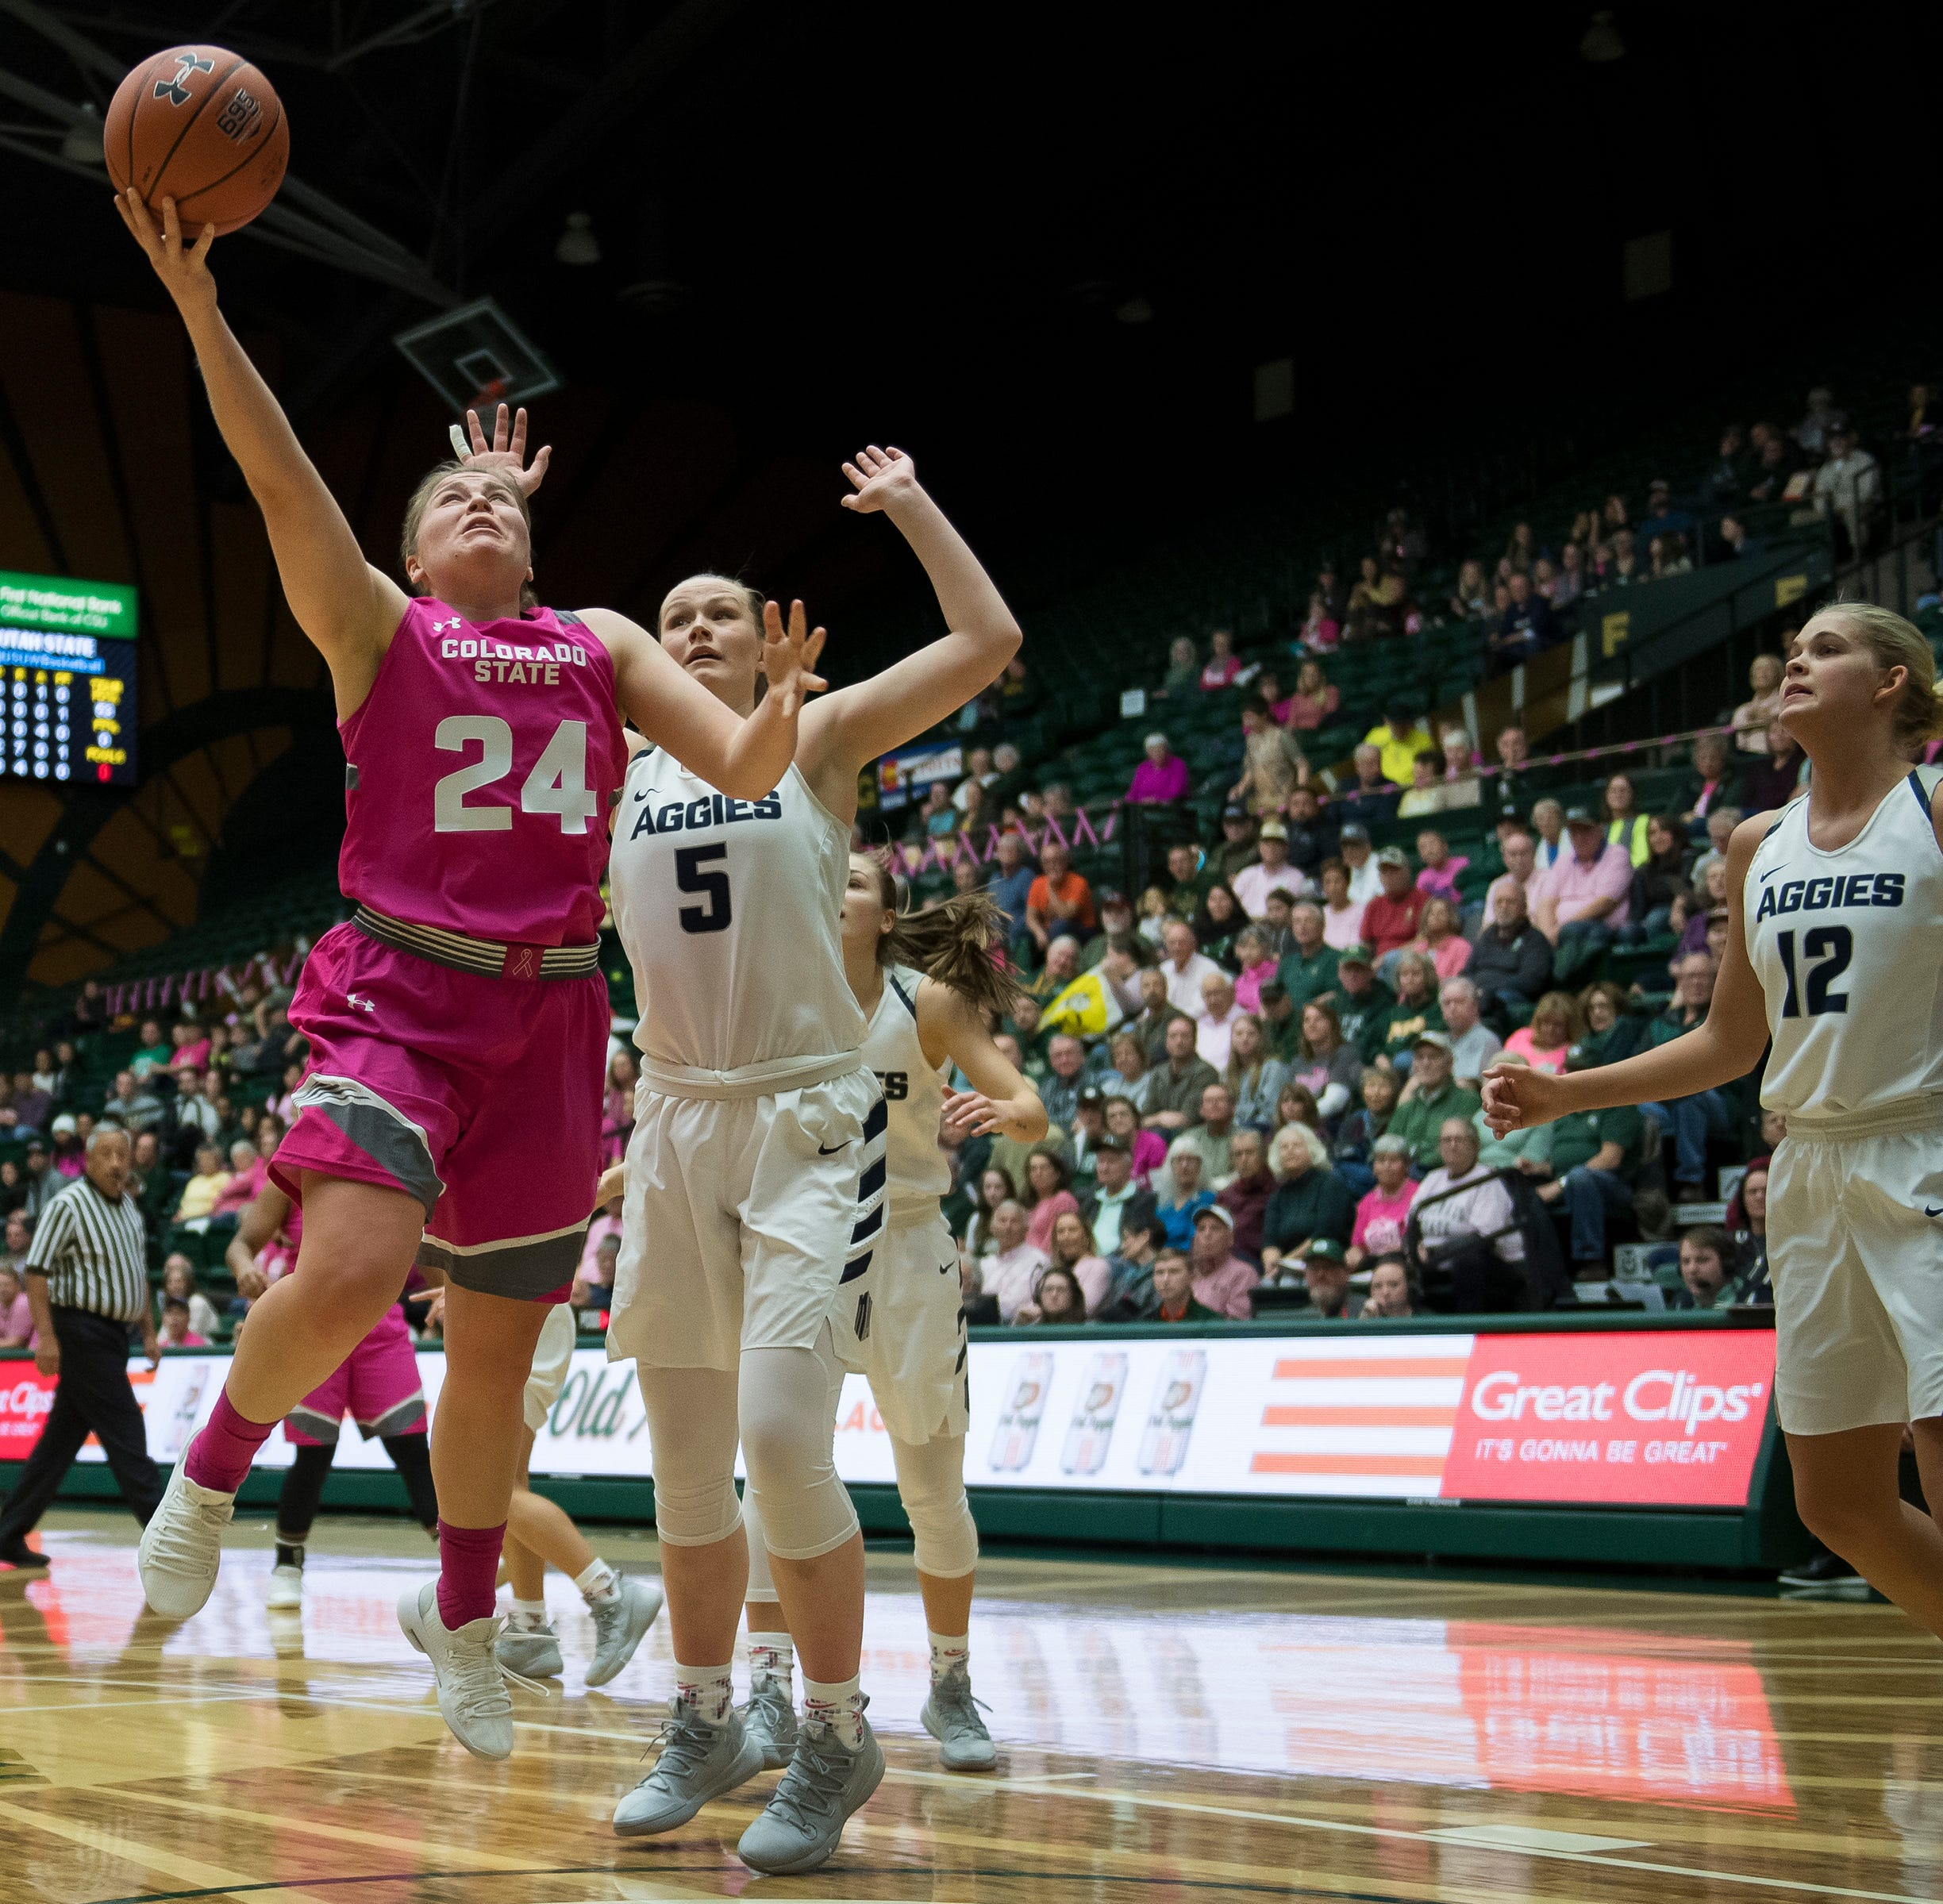 CSU women's basketball team loses No. 2 scorer Mollie Mounsey